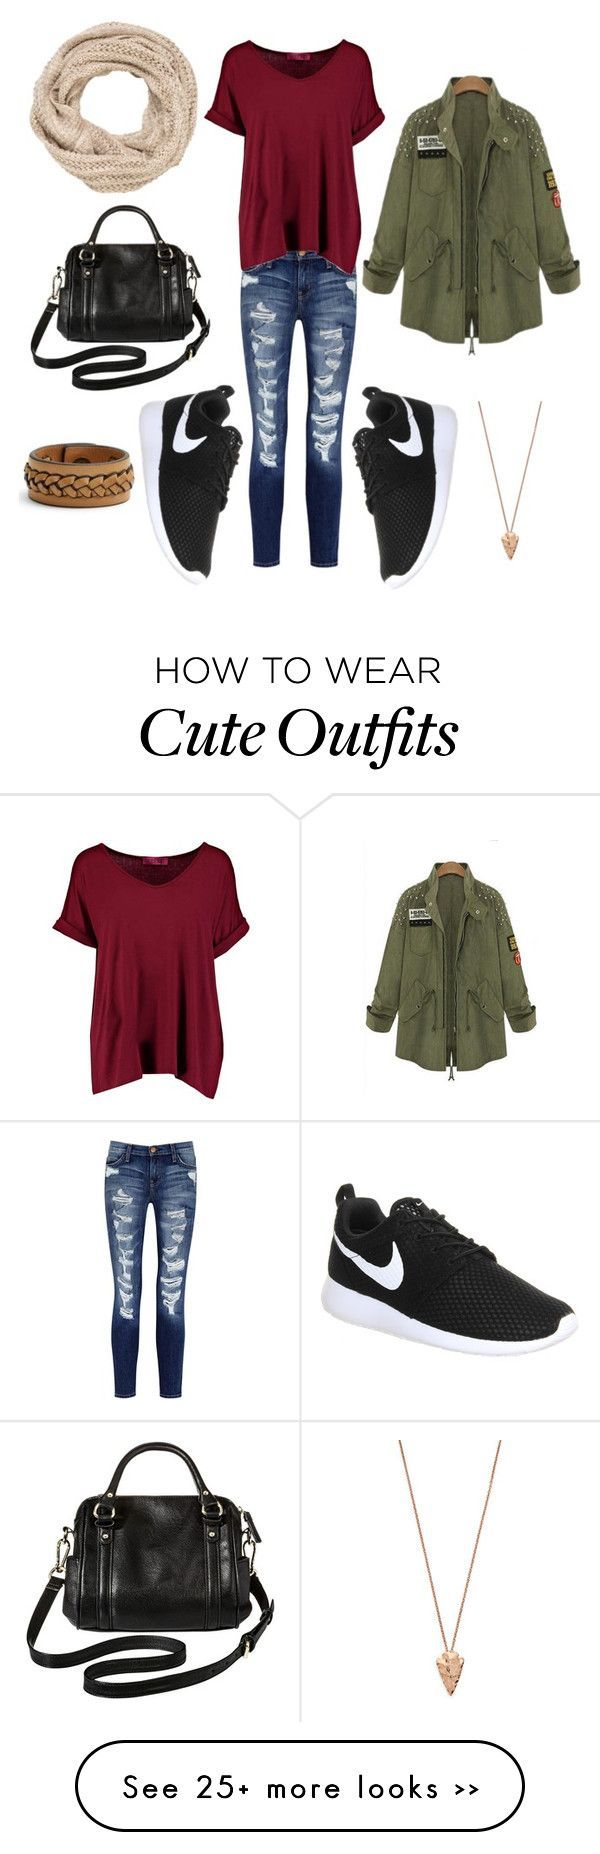 cute but casual day time look  by kaitlynerose on Polyvore featuring Current/Elliott, Boohoo, NIKE, Merona, maurices, Pamela Love and Frye